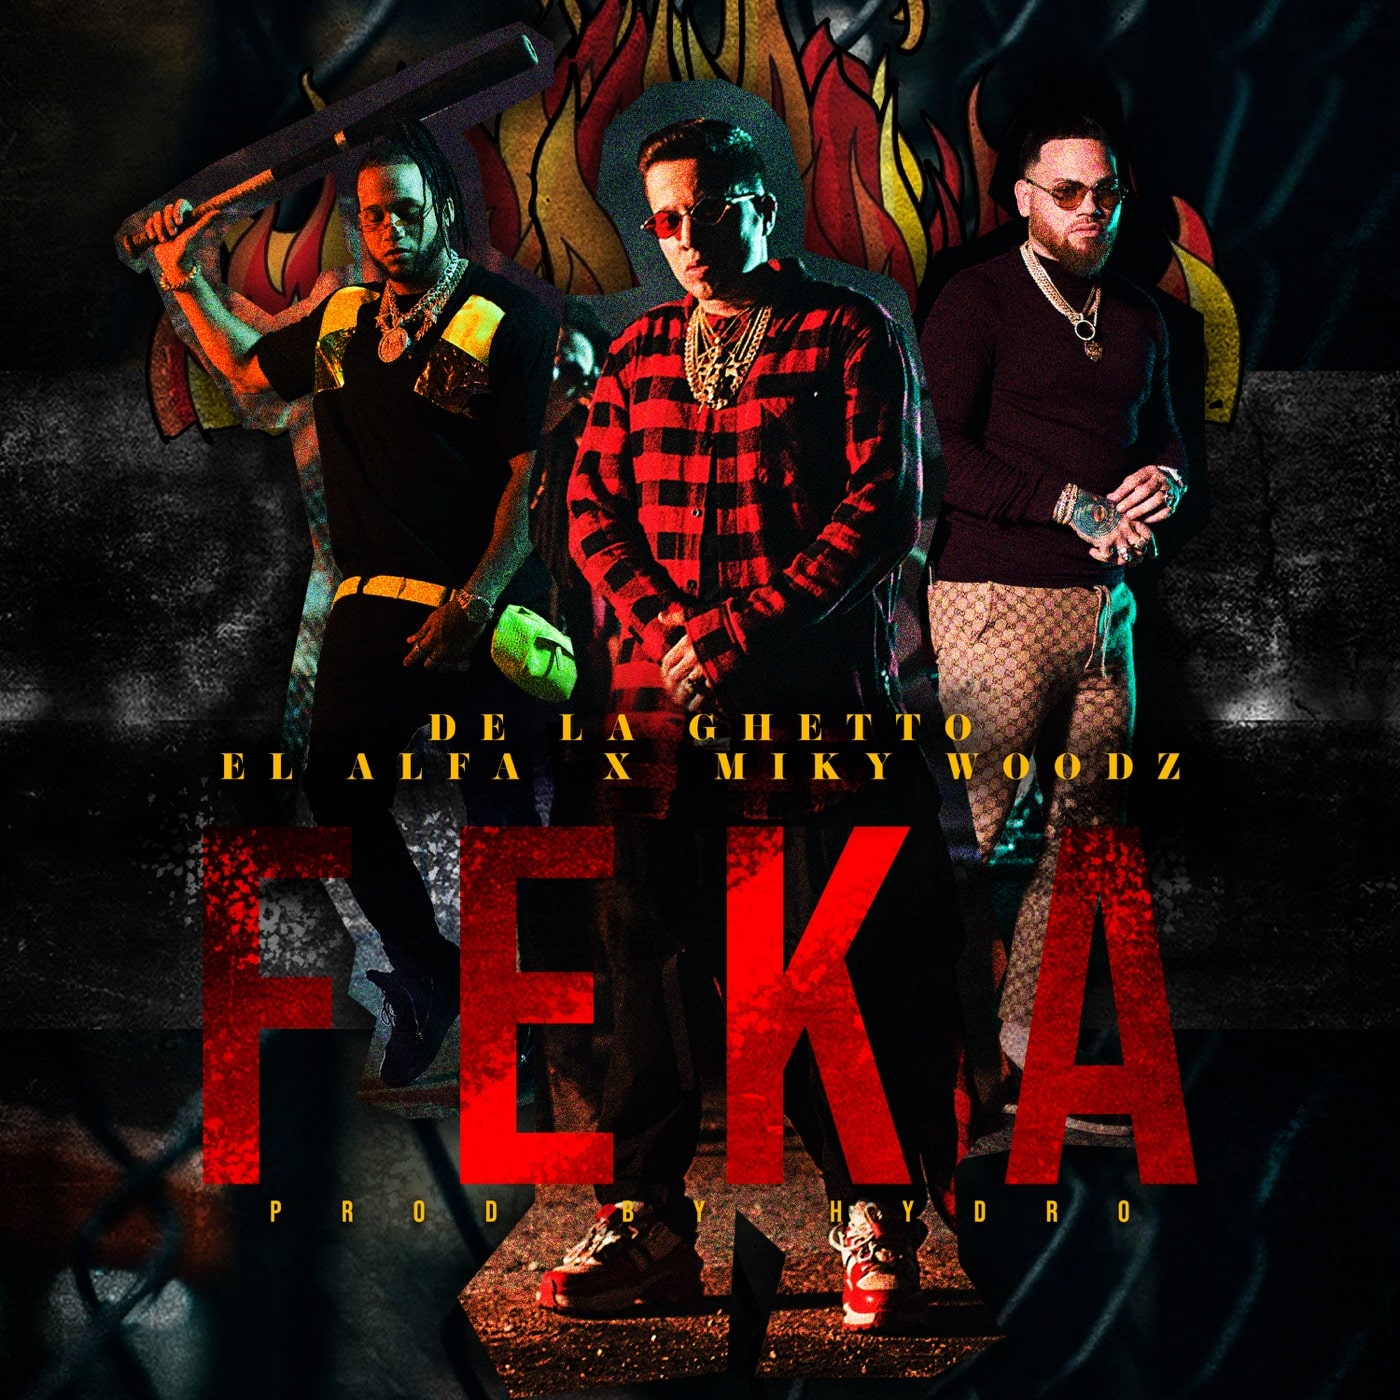 Photo of De La Ghetto, El Alfa y Miky Woodz lanzan 'FEKA'